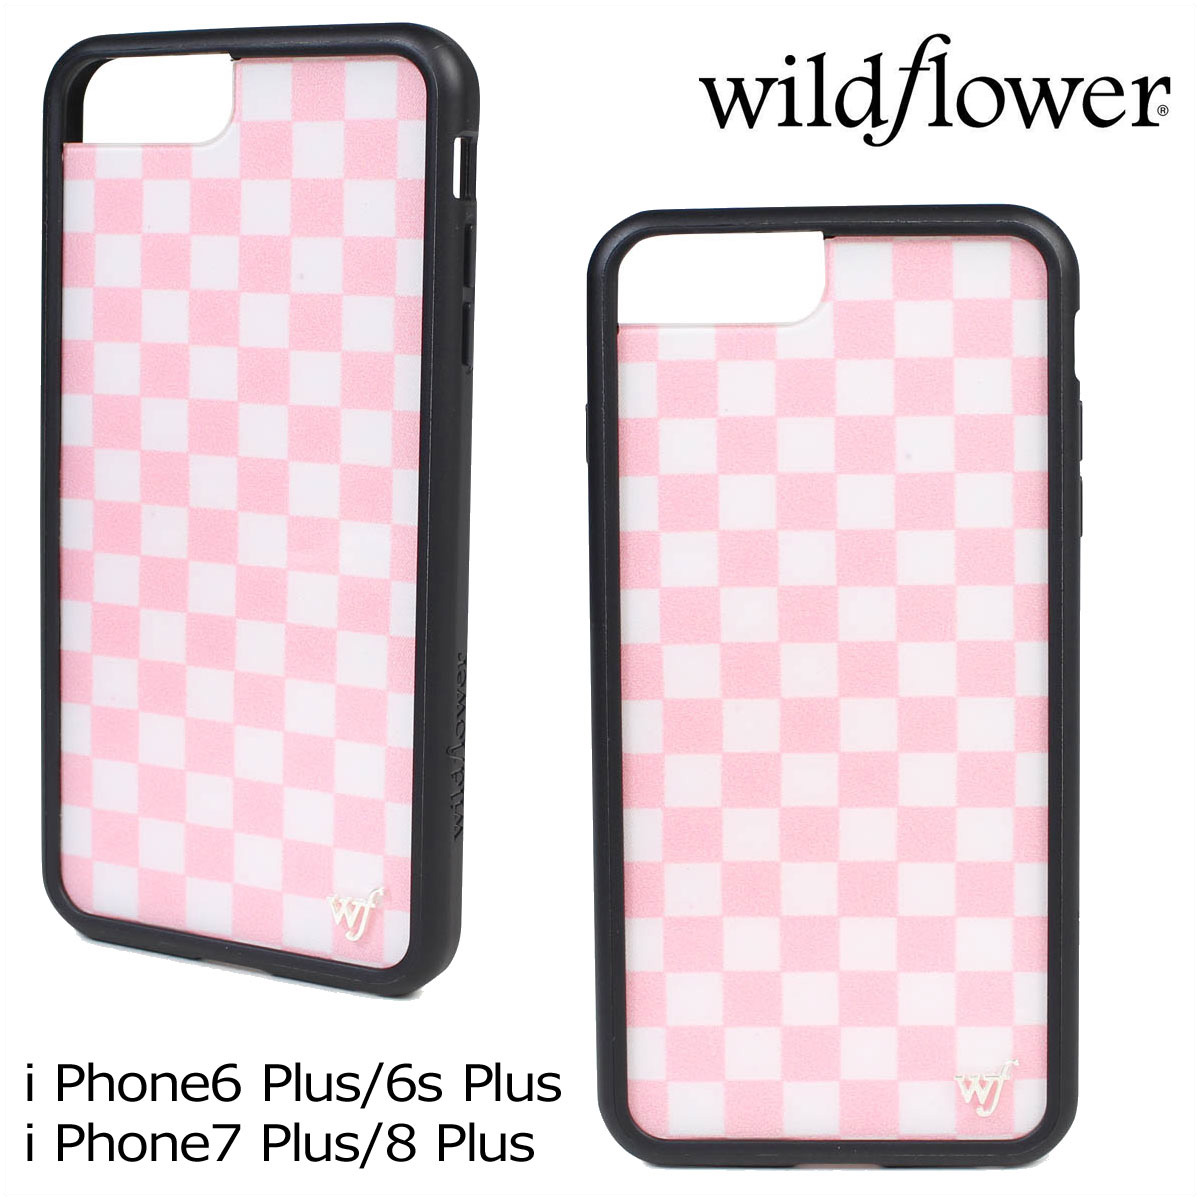 buy popular 47d48 29782 wildflower iPhone8 7 iPhone 6 6s wild flower case Plus smartphone eyephone  Lady's checker pink PCHE